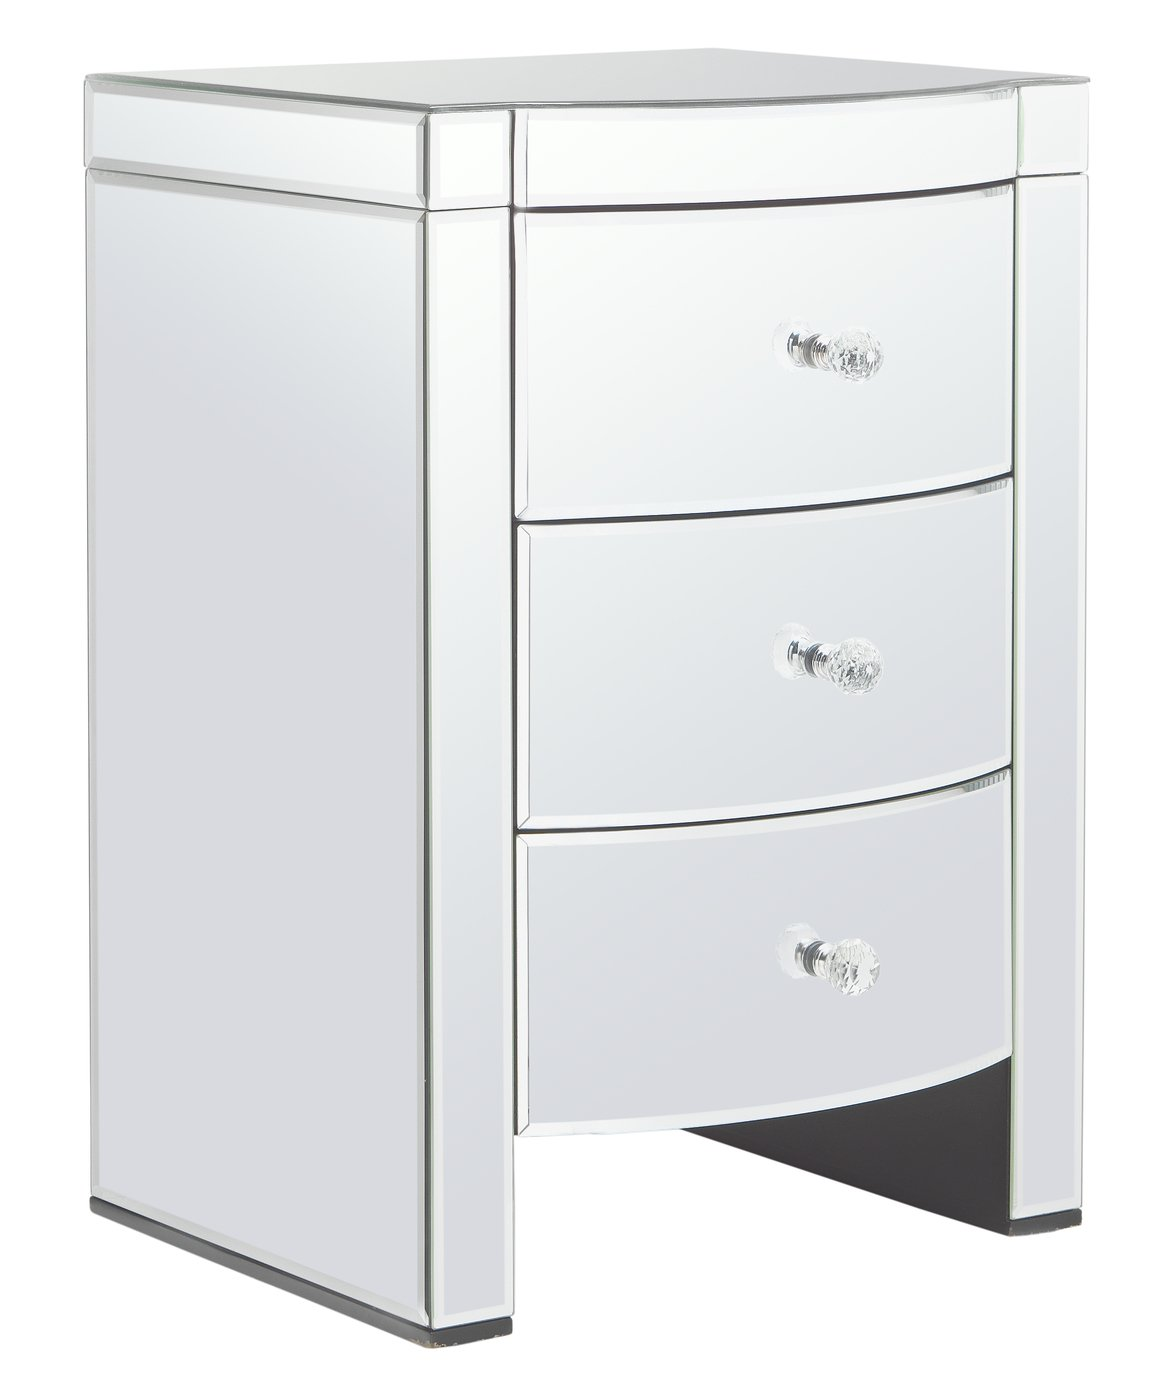 Argos Home Canzano 3 Drawer Bedside Cabinet - Mirrored